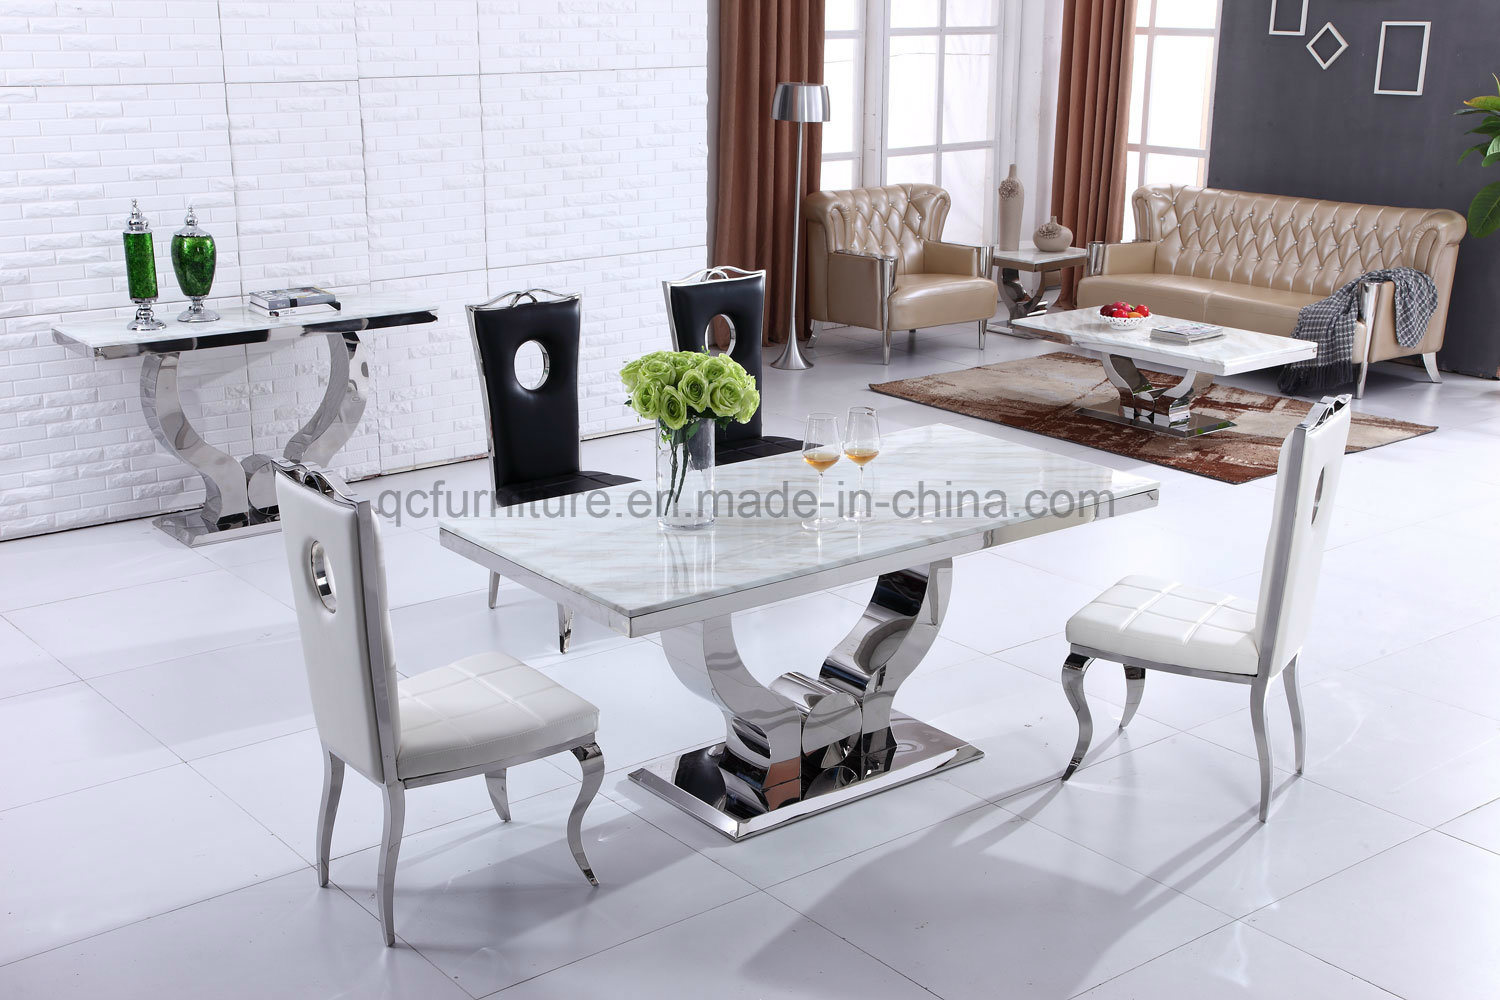 China 2019 Most Popular 8 Seater Marble Top Dining Table Sets